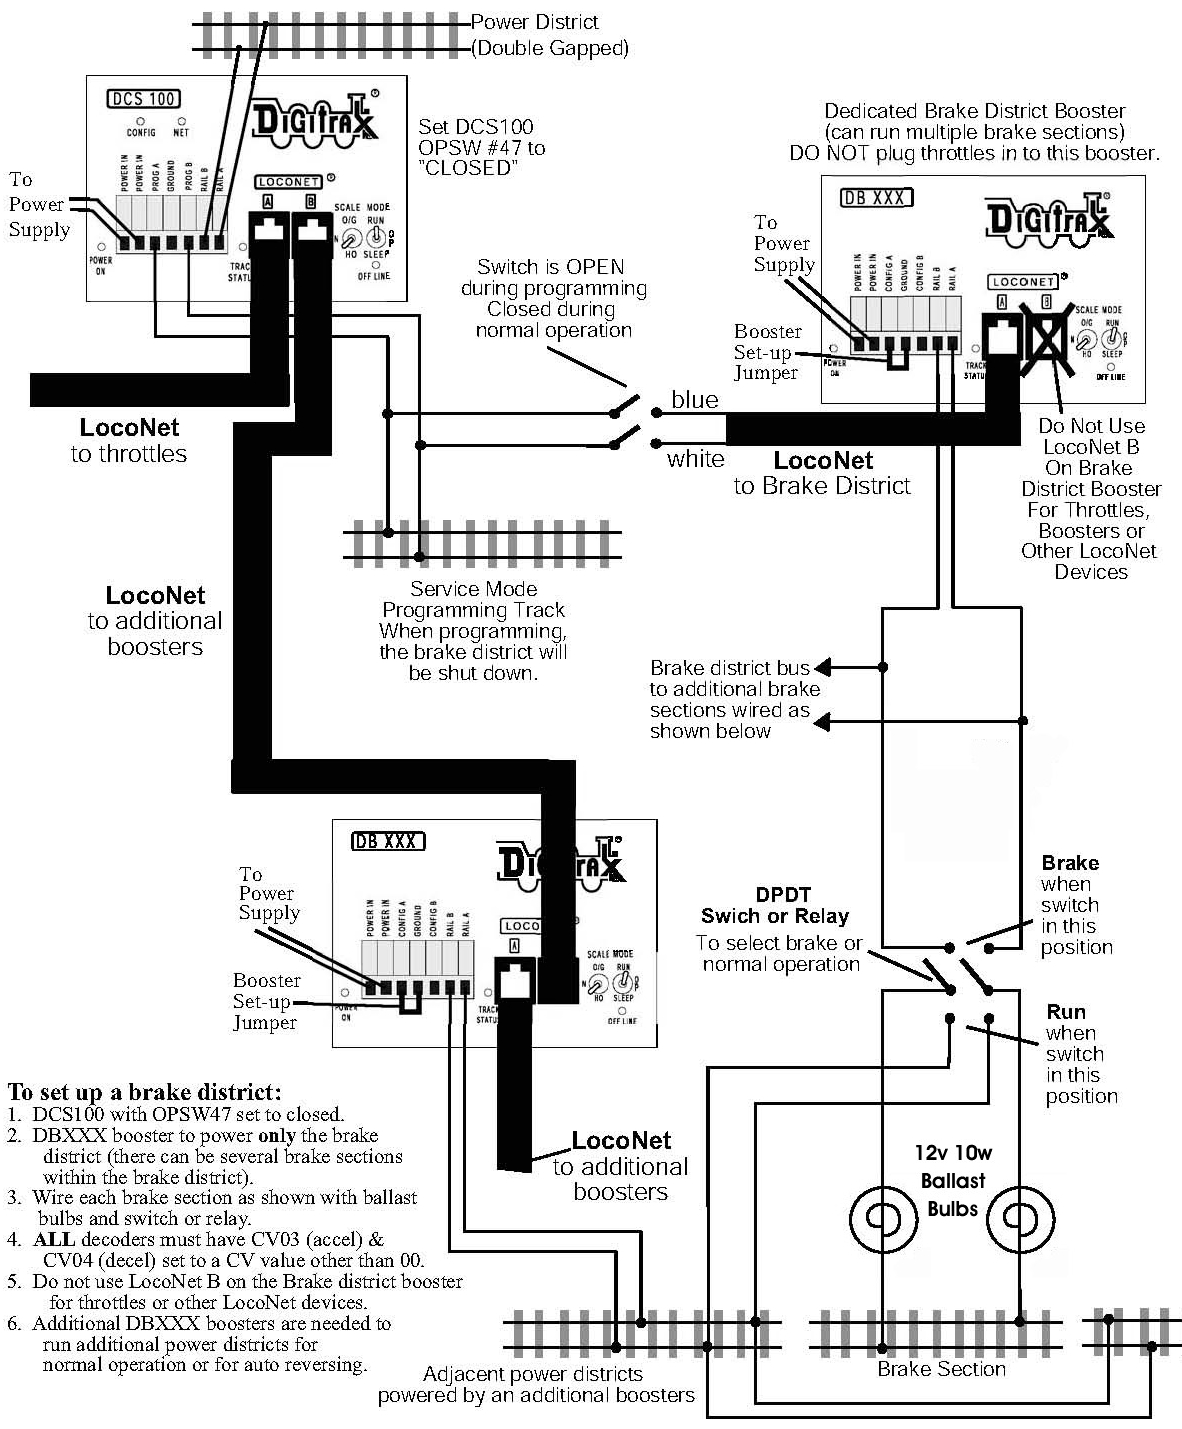 Wiring Dcc Power Districts, Wiring, Get Free Image About